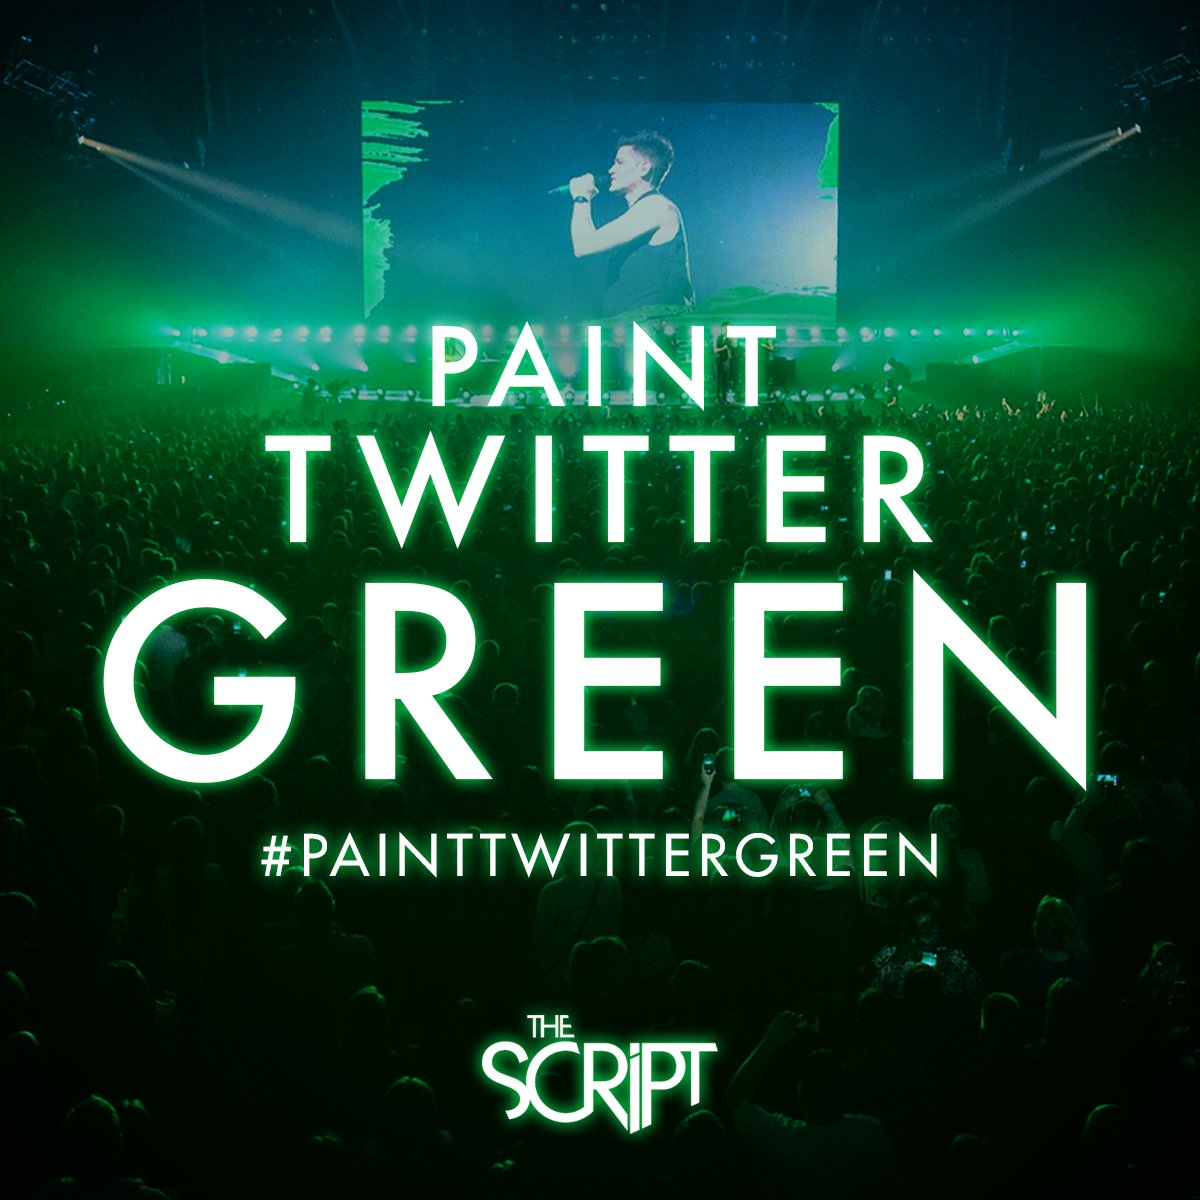 EPIC! Our whole feed is green! Keep on tweeting #PaintTwitterGreen https://t.co/TYAdbOsZce